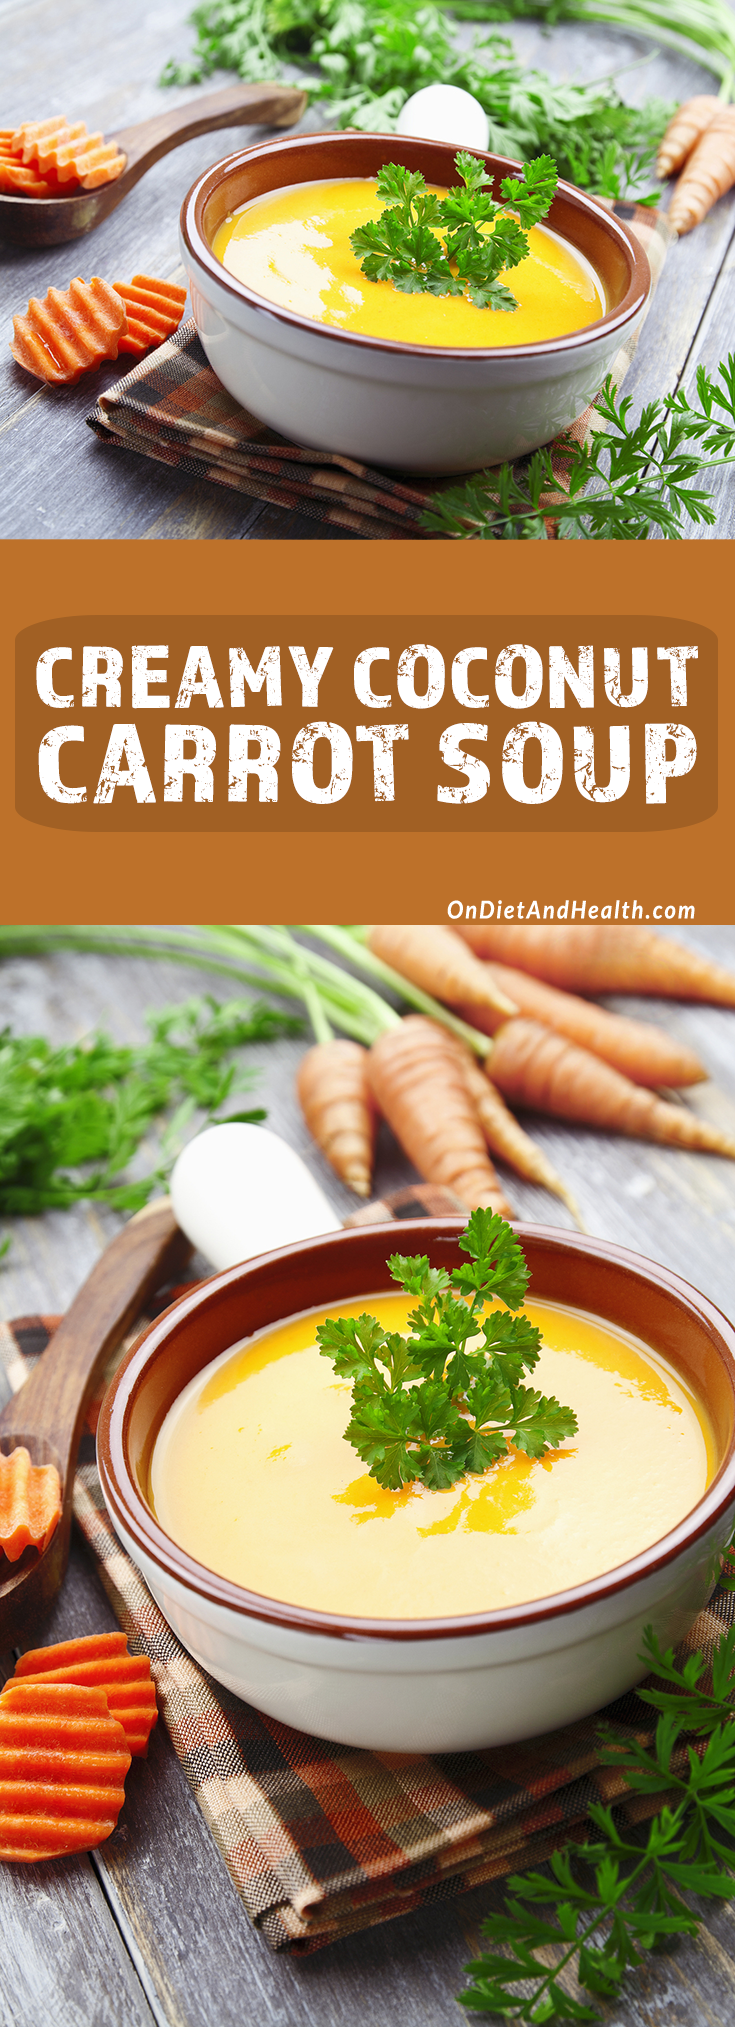 coconut carrot soup in a bowl